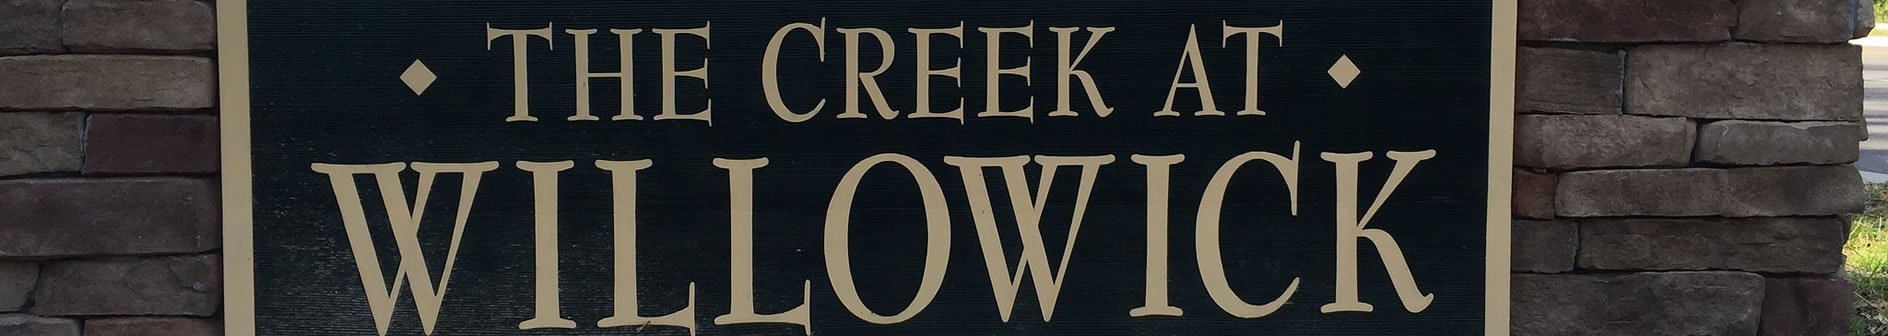 The Creek at Willowick sign in Wilmington